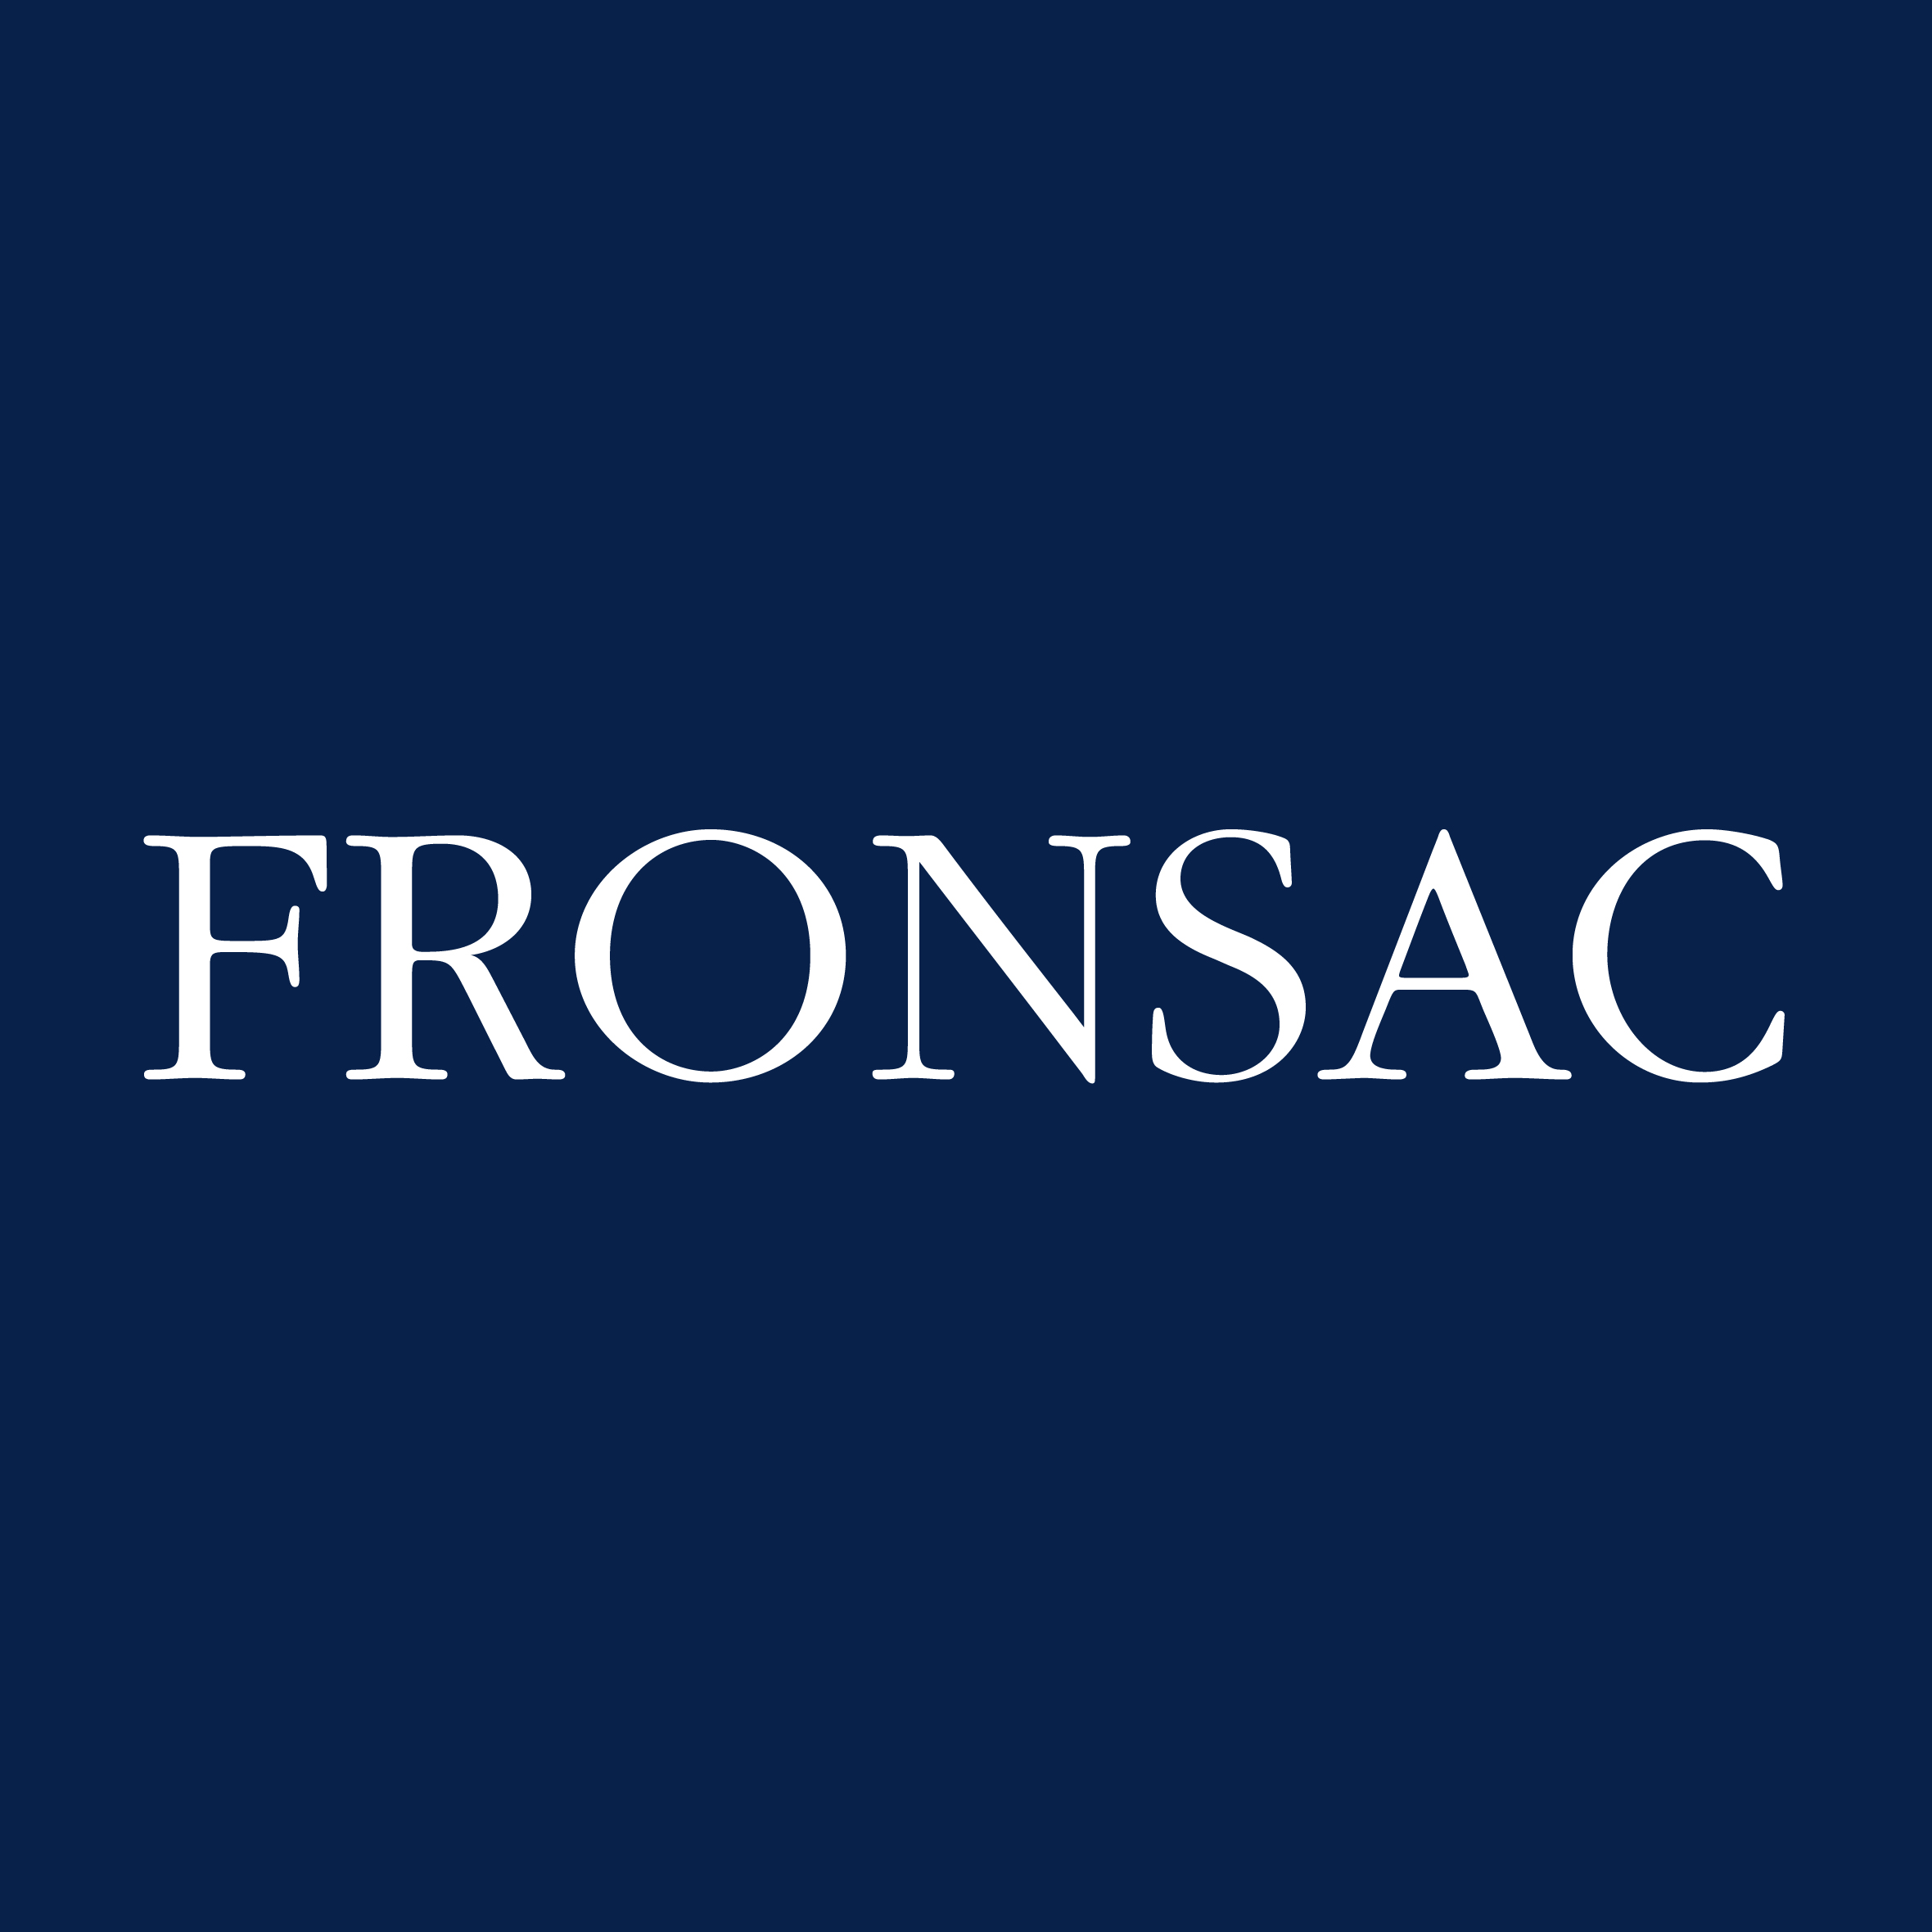 Fronsac Announces the Closing of a Previously Announced Five Property Grocery Store Portfolio